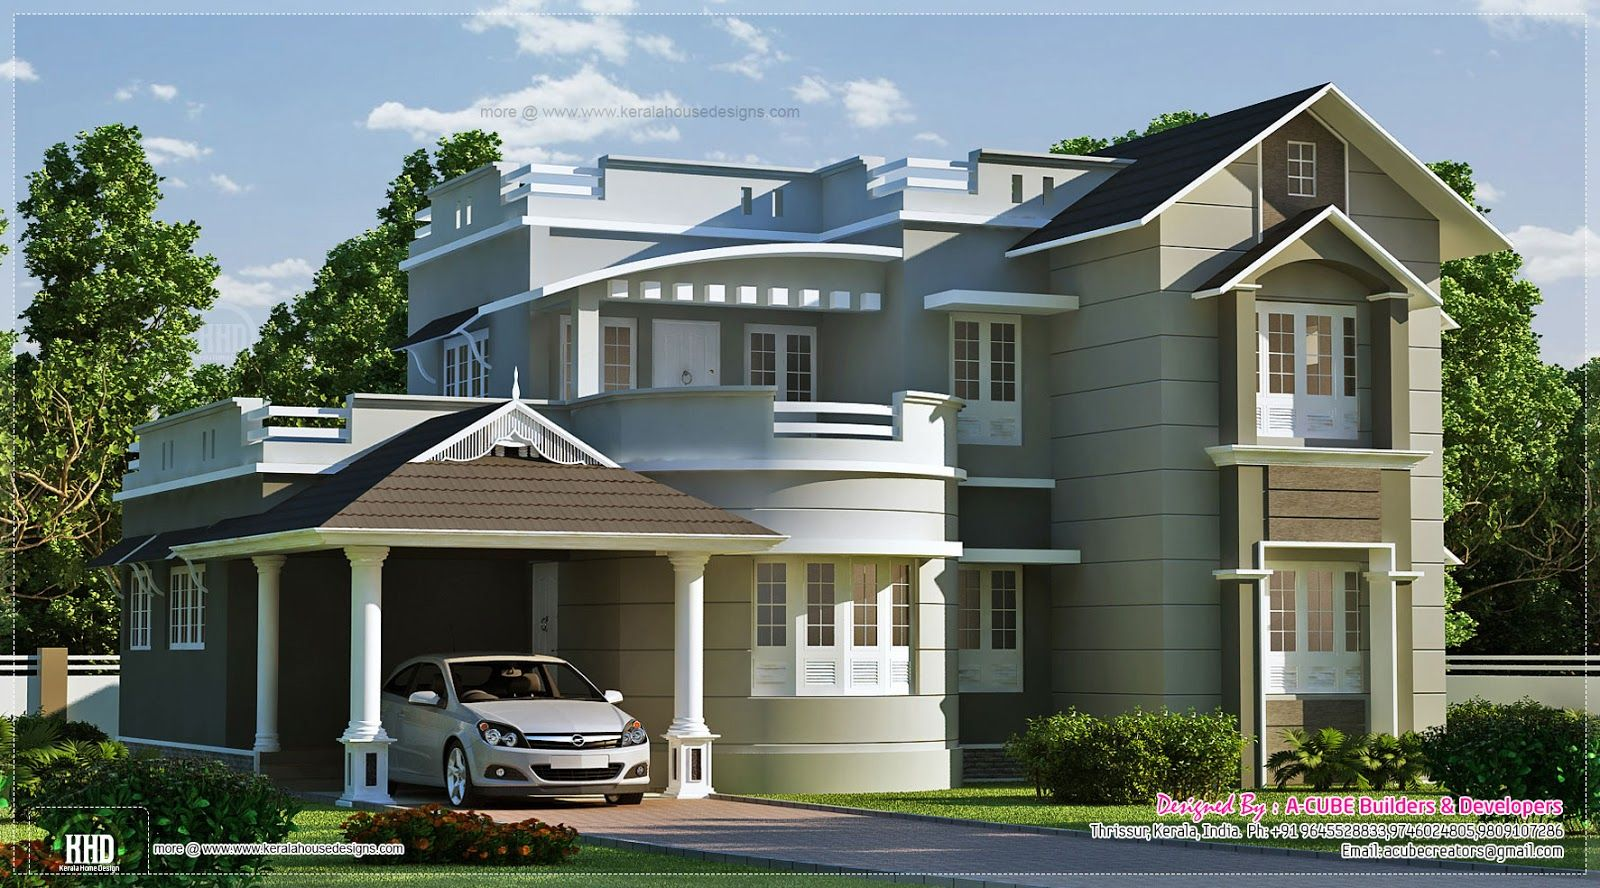 Delectable 20 Home Design Plans Design Inspiration Of Best 25